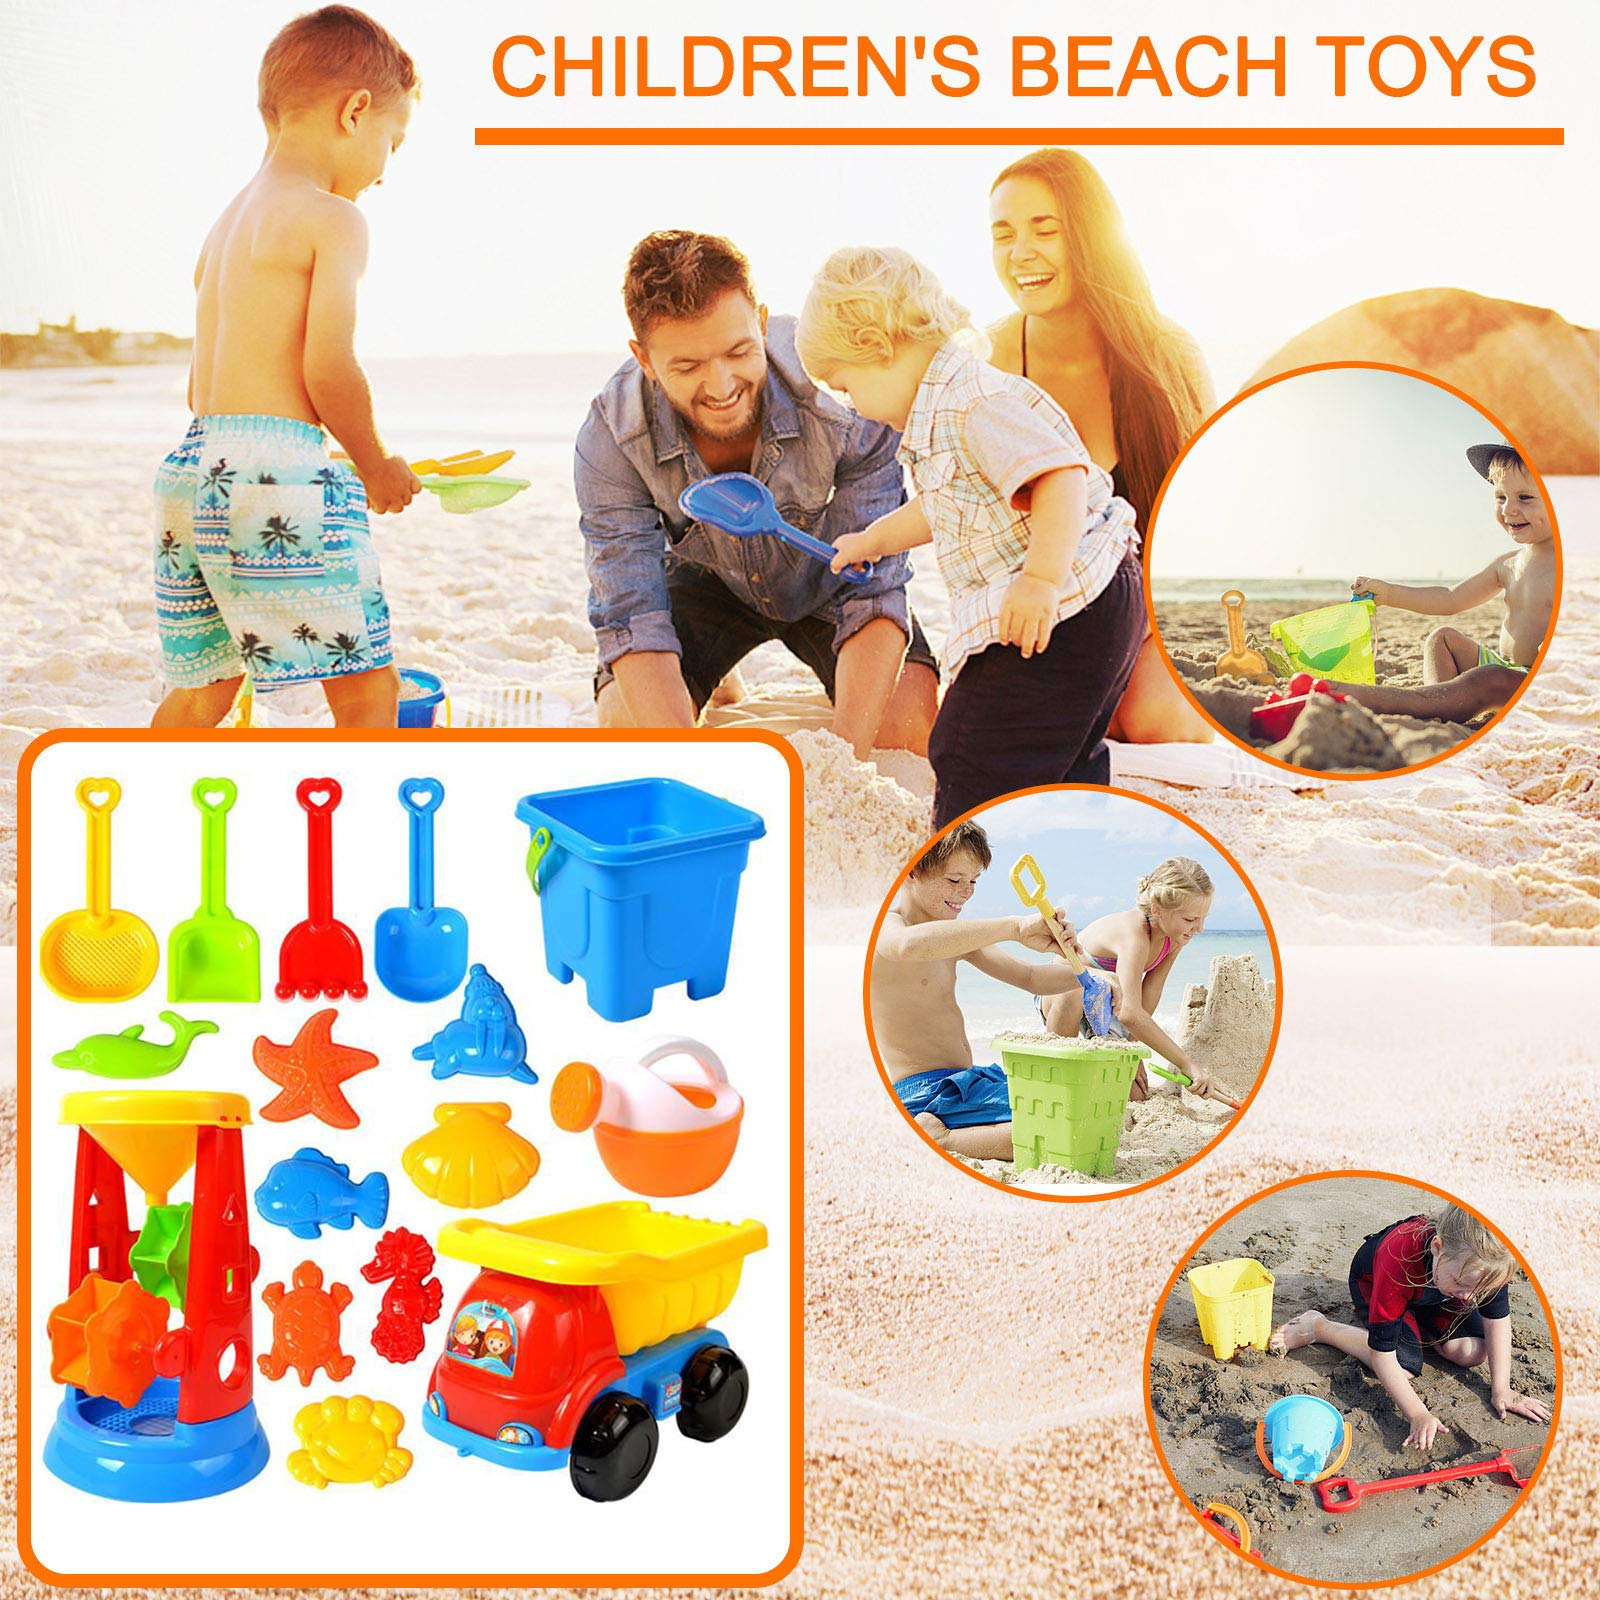 Beach Sand Toys for Kids, Toddlers Beach Toy Sand Set Summer Outdoor Toy Sandpit Learning Playing Toy Gift Set for Children's (16 Piece)